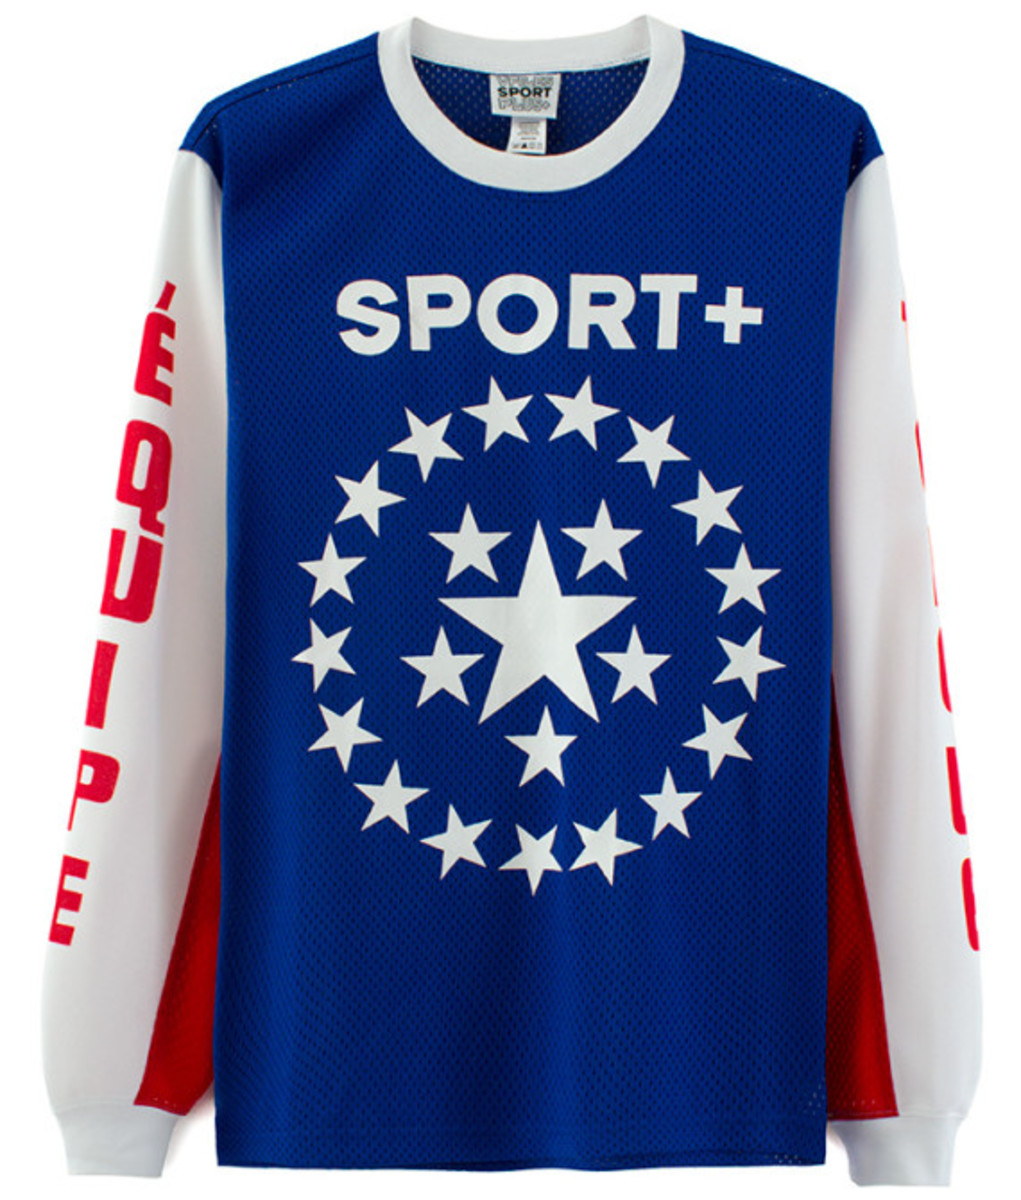 vfiles-sport-plus-debut-collection-06